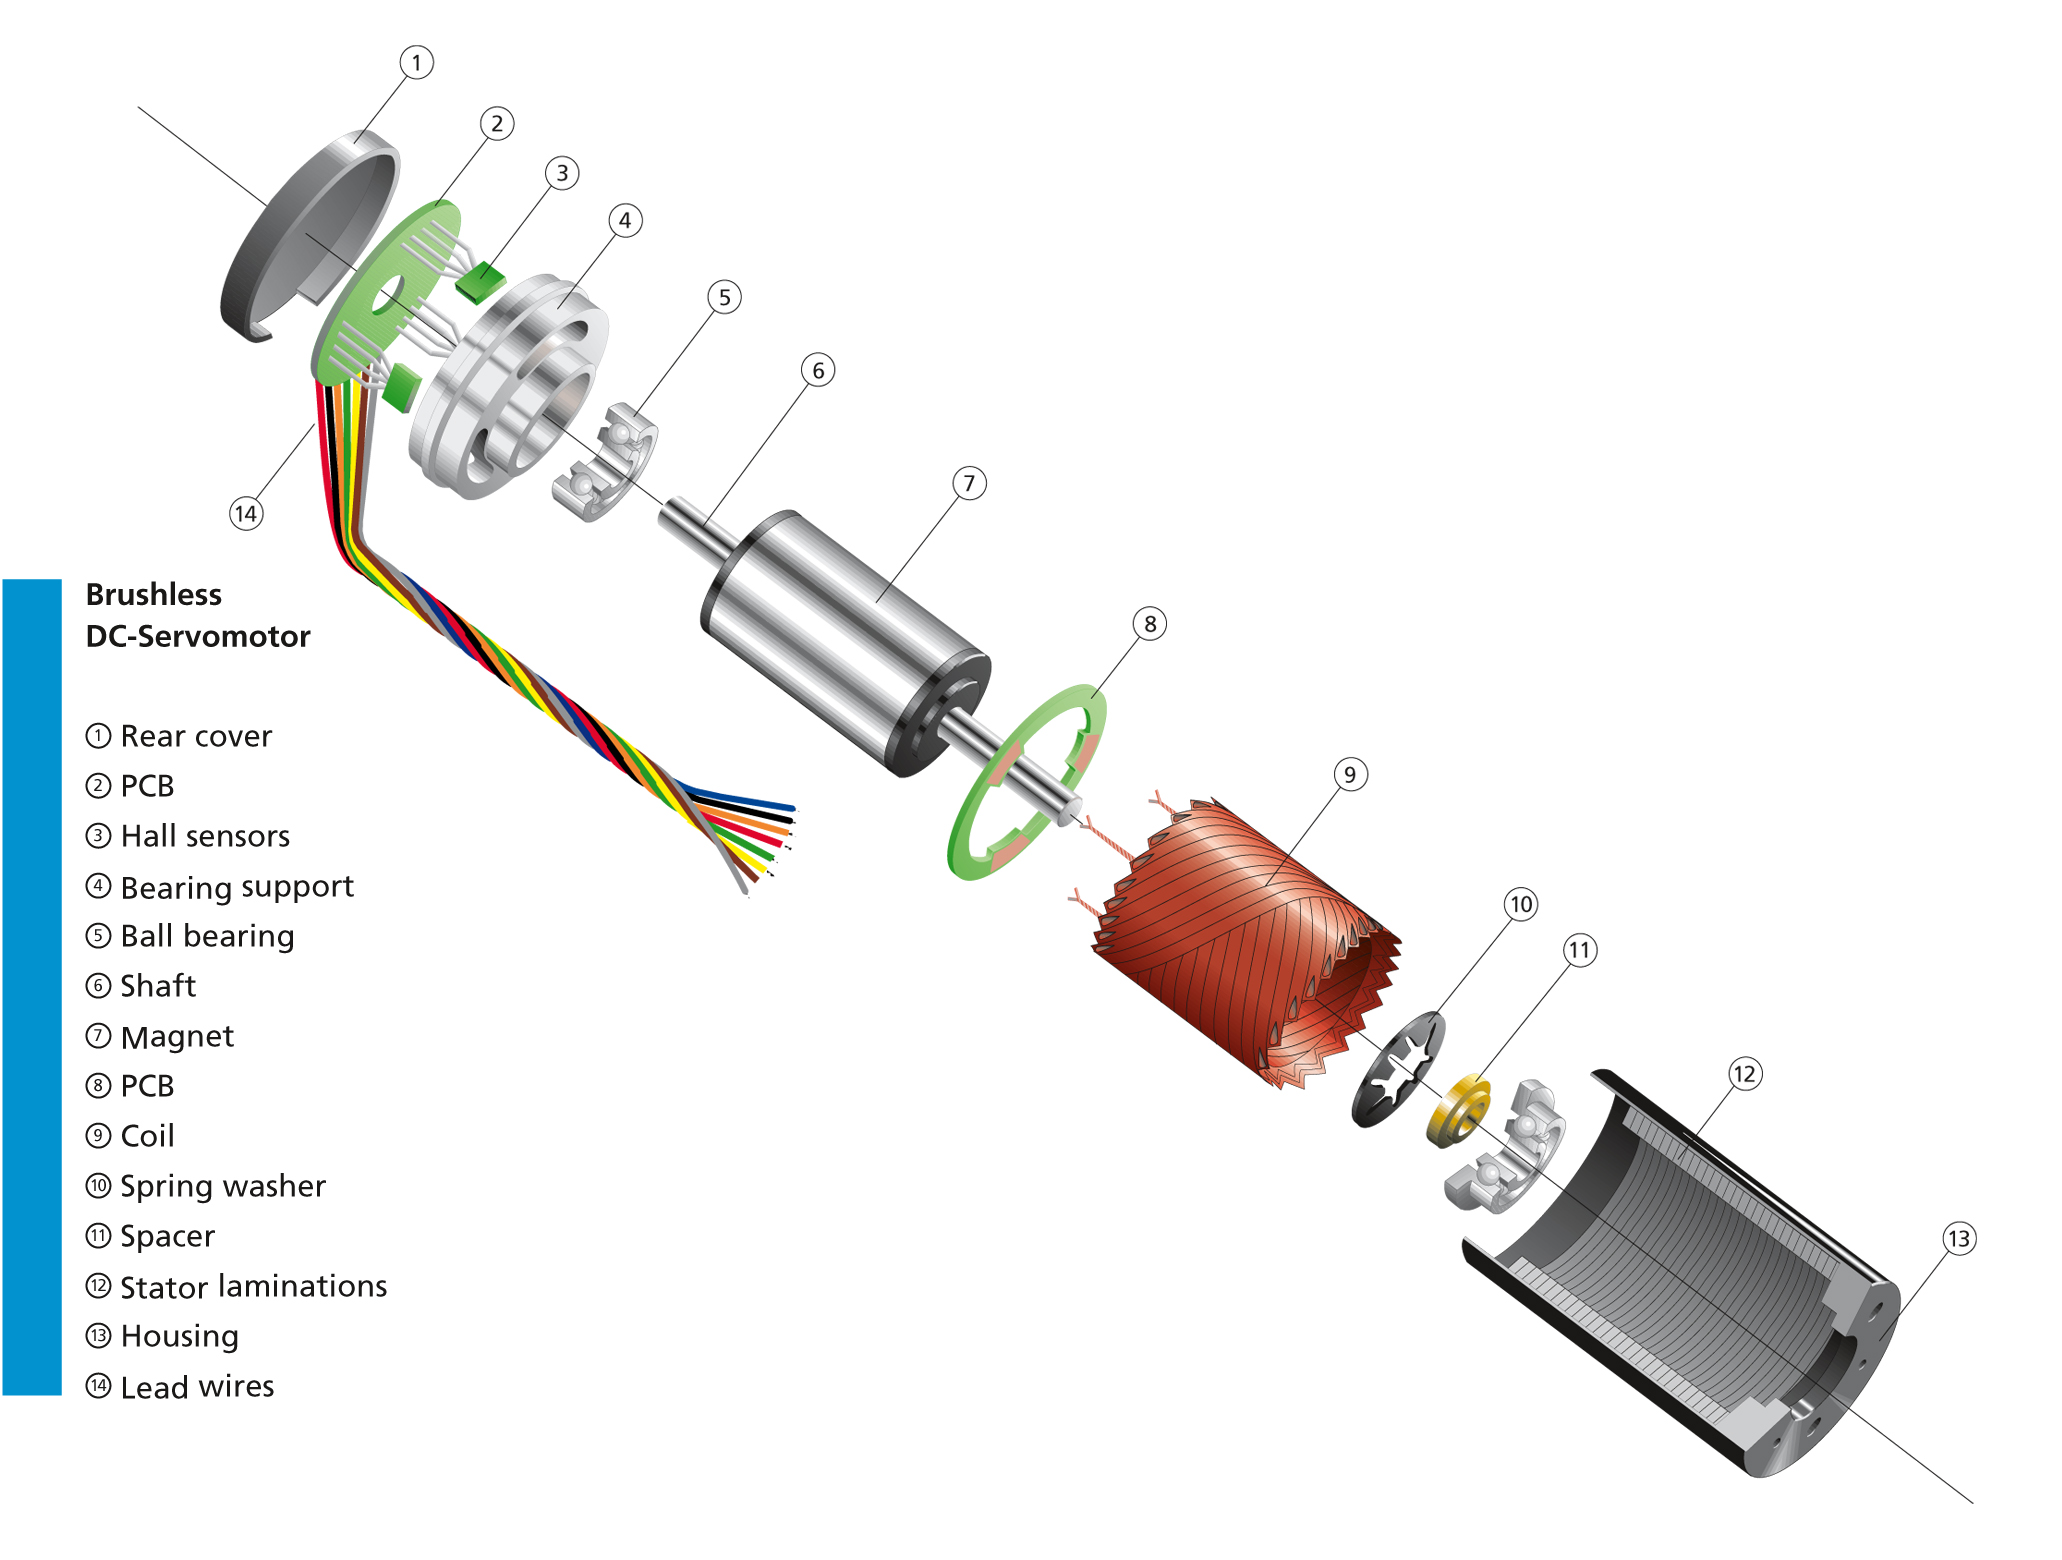 brushless motor wiring diagram 2002 ford expedition engine hall sensor electric